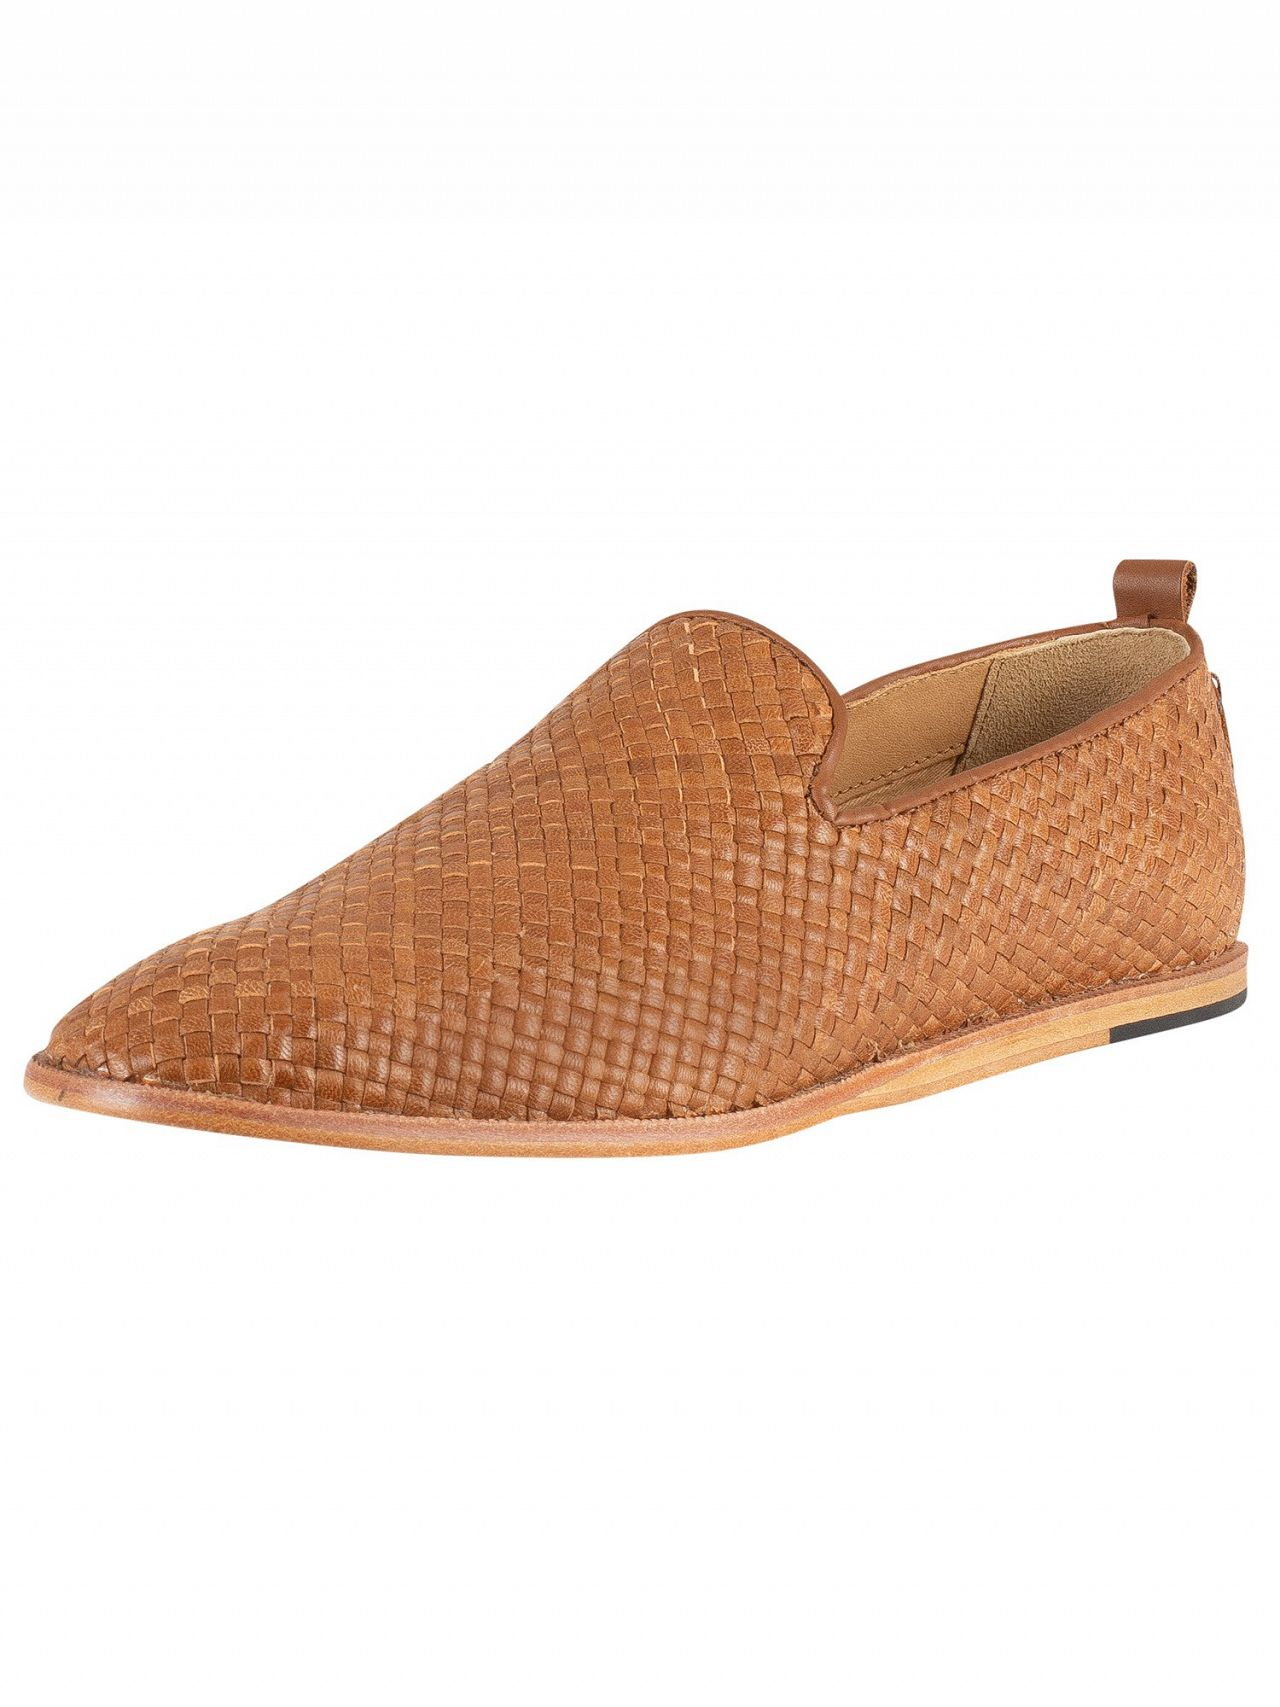 3af7bd6b16e H by Hudson Tan Ipanema Leather Shoes